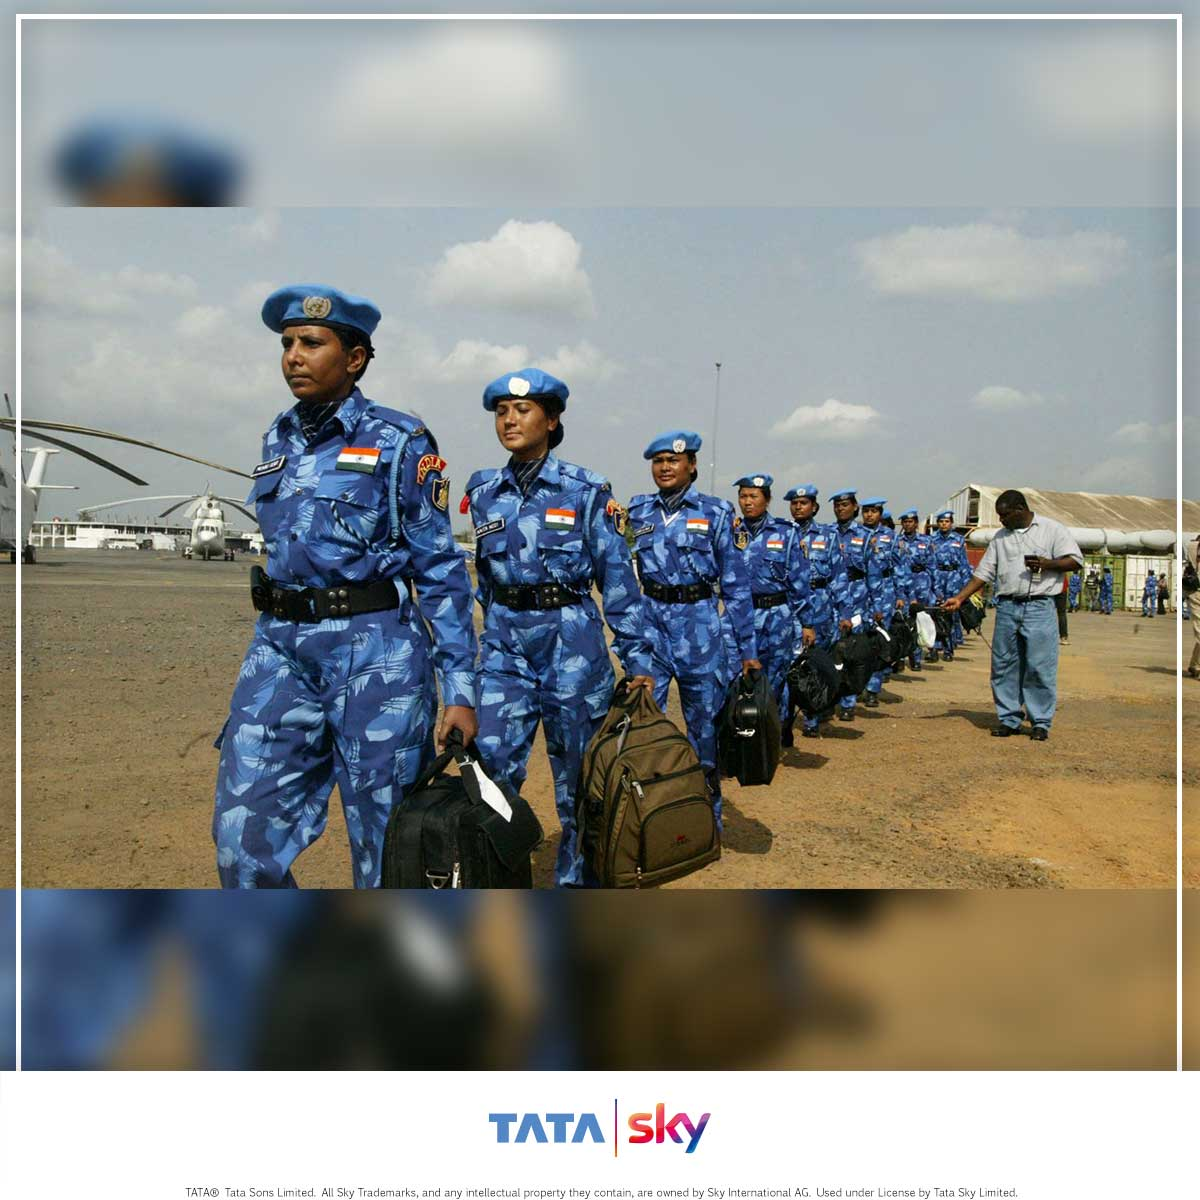 Tata Sky Blogbuster - Indian Women Peace Keepers